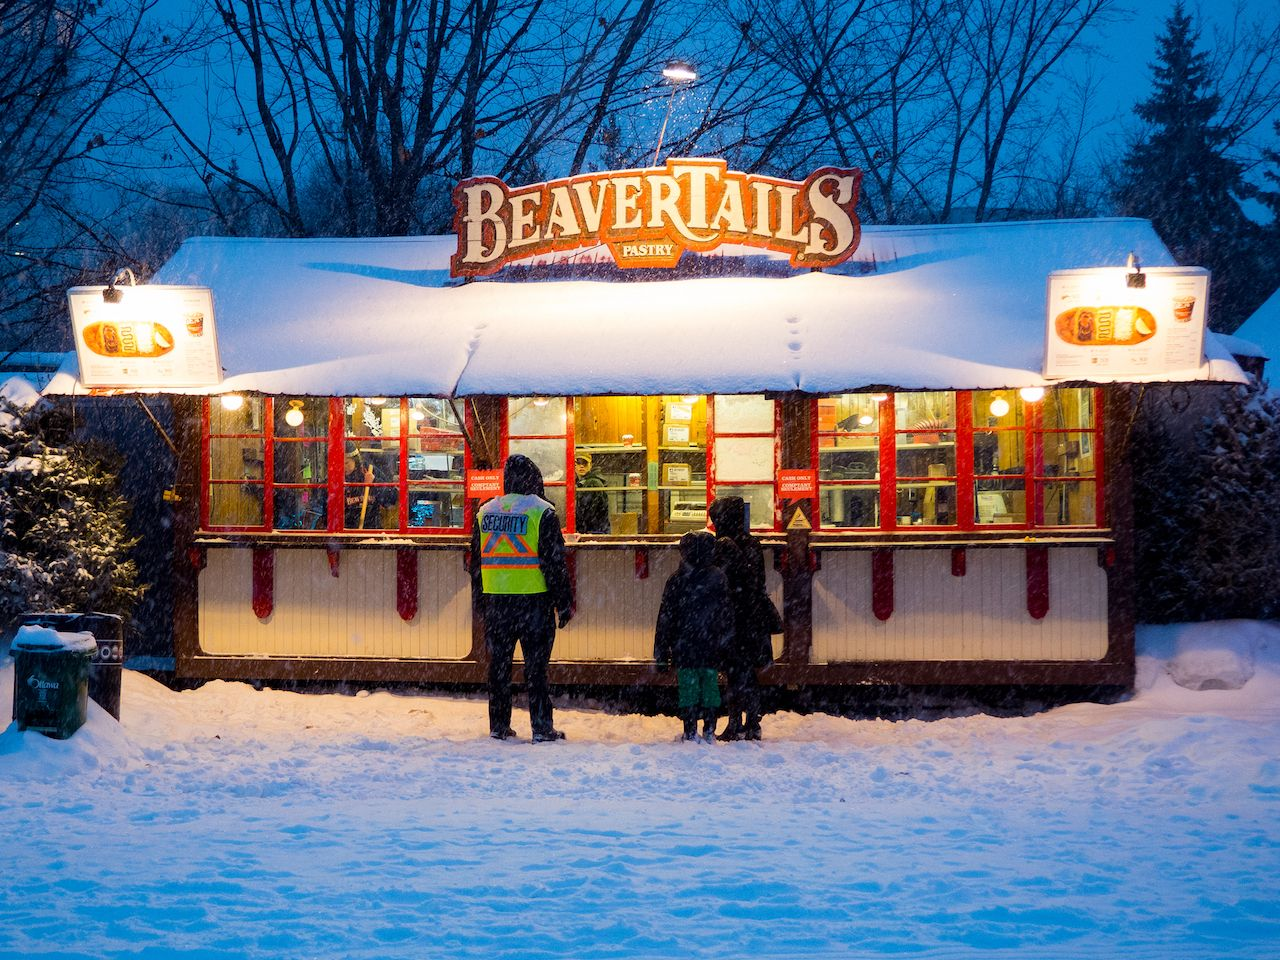 BeaverTails pastry stand in Canada during winter